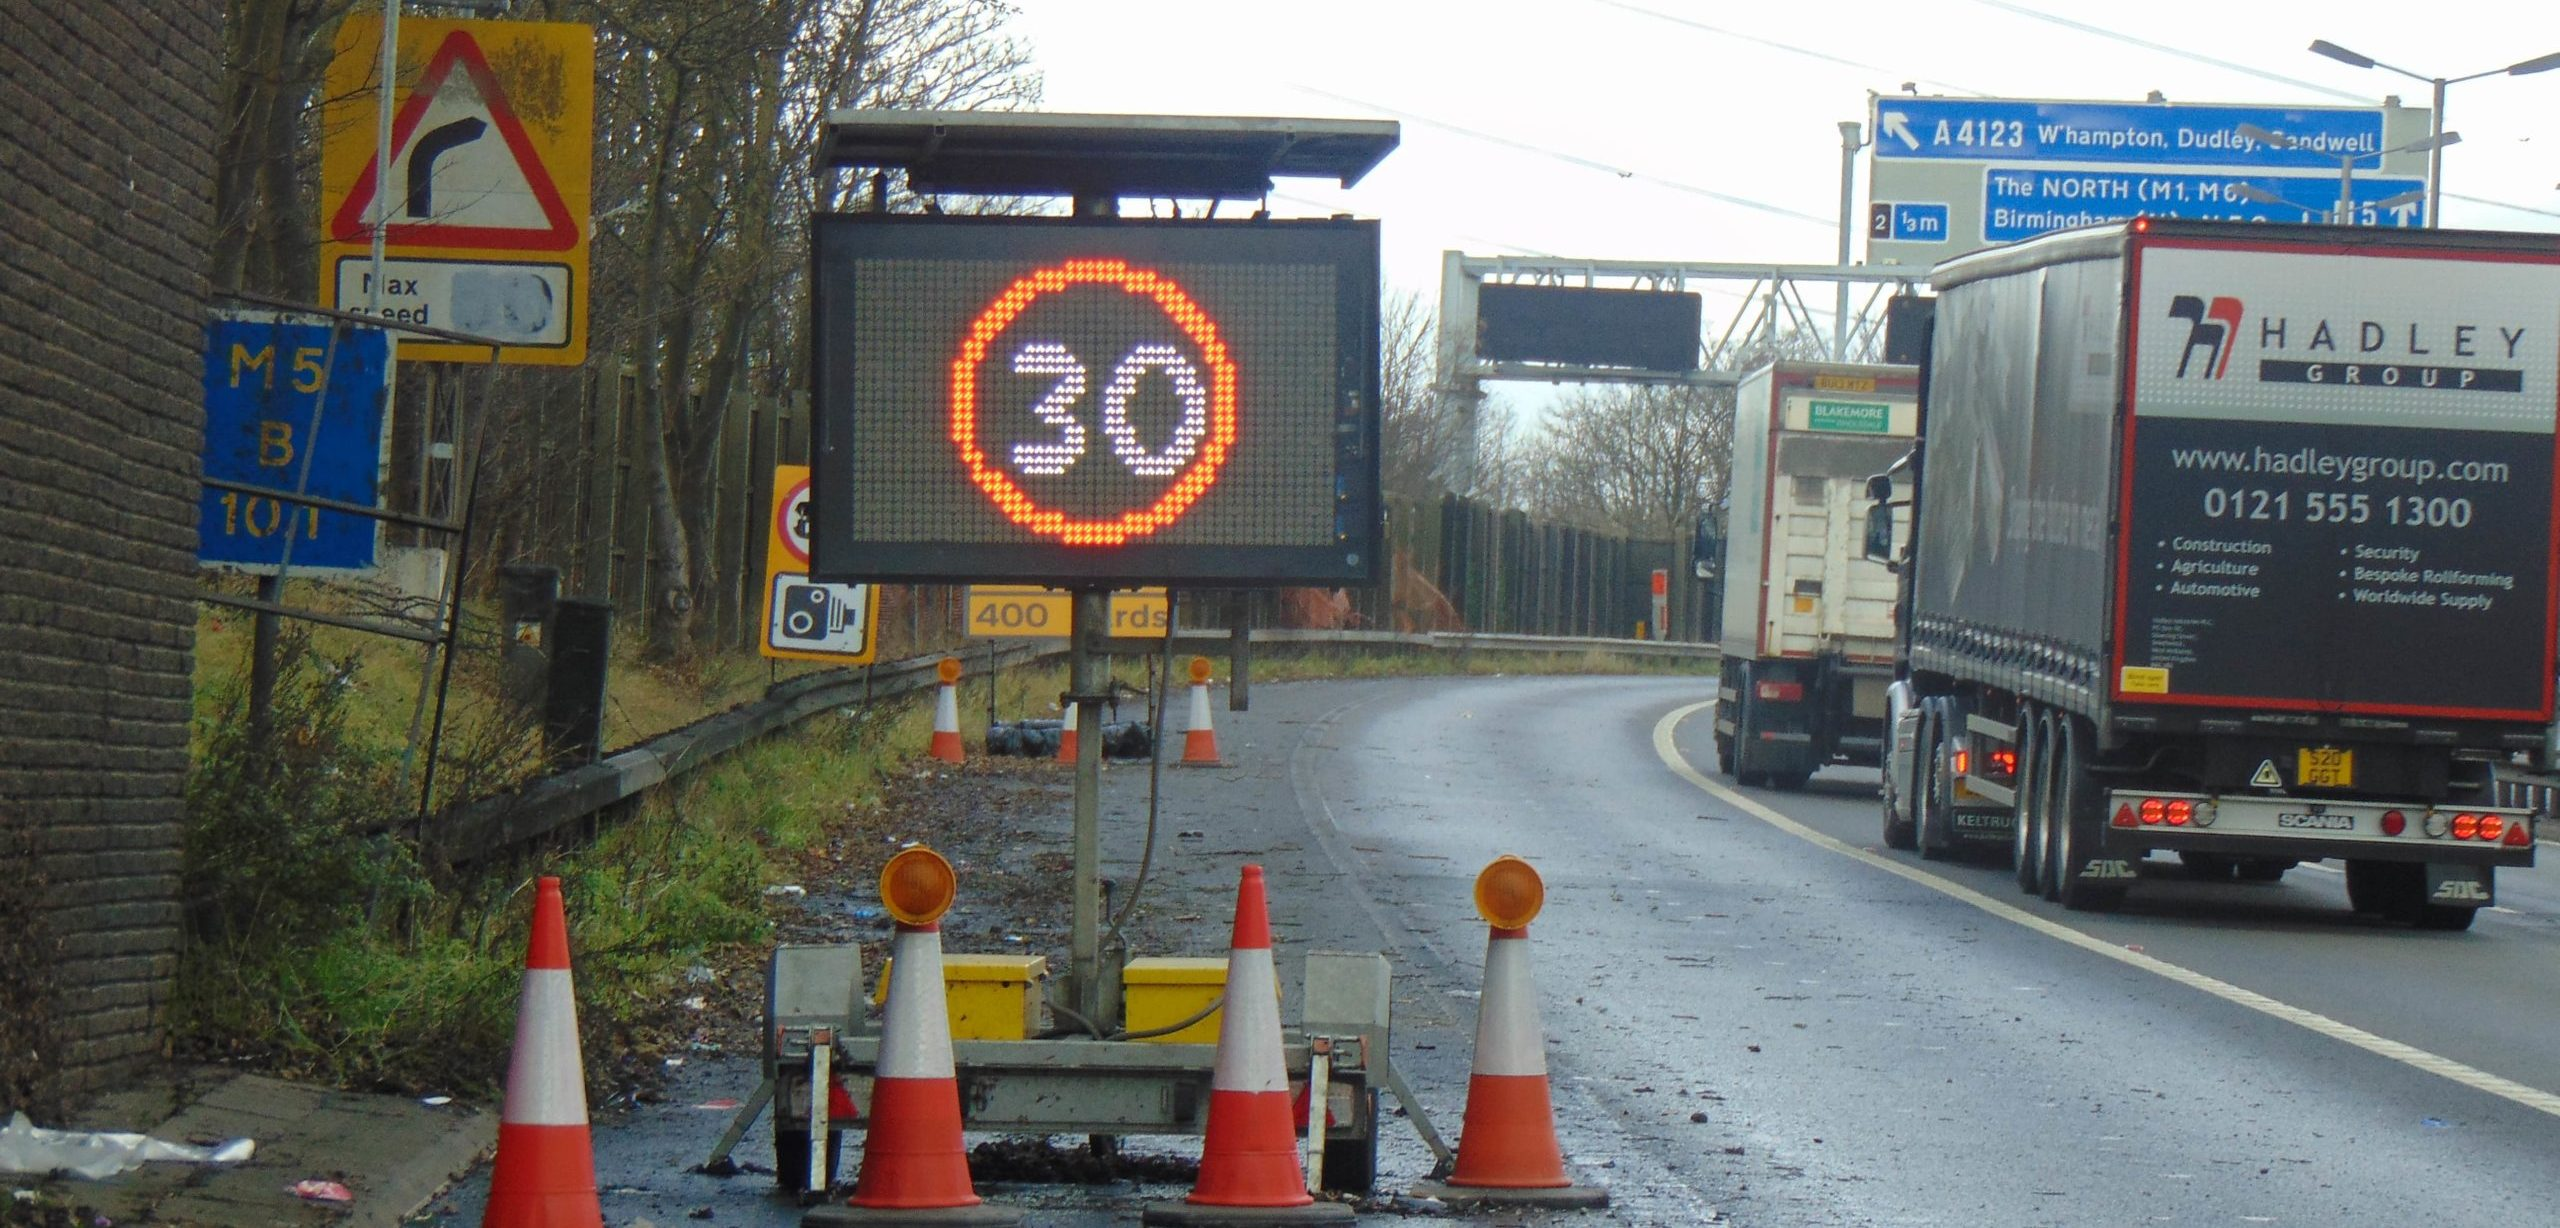 VMS-A on high speed road for traffic management